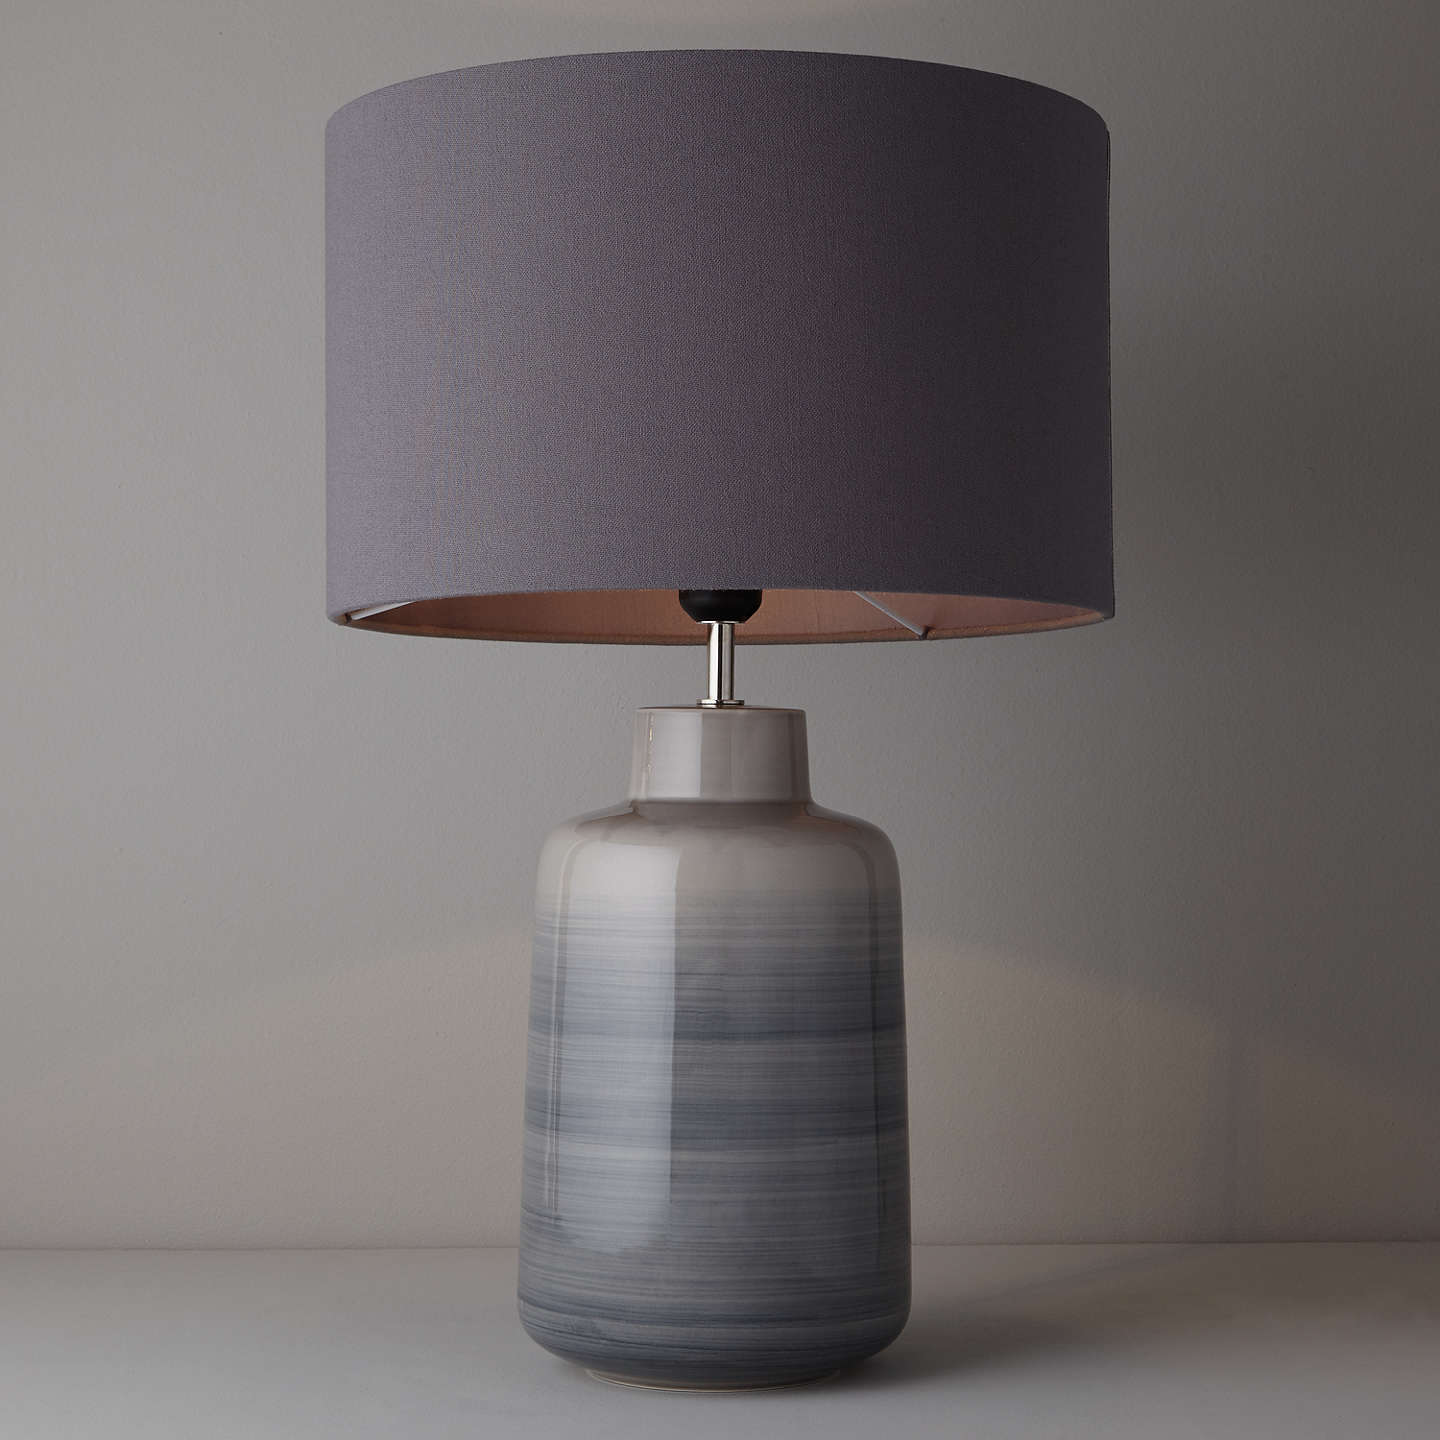 grey rustic ceramic table udine lamp base image